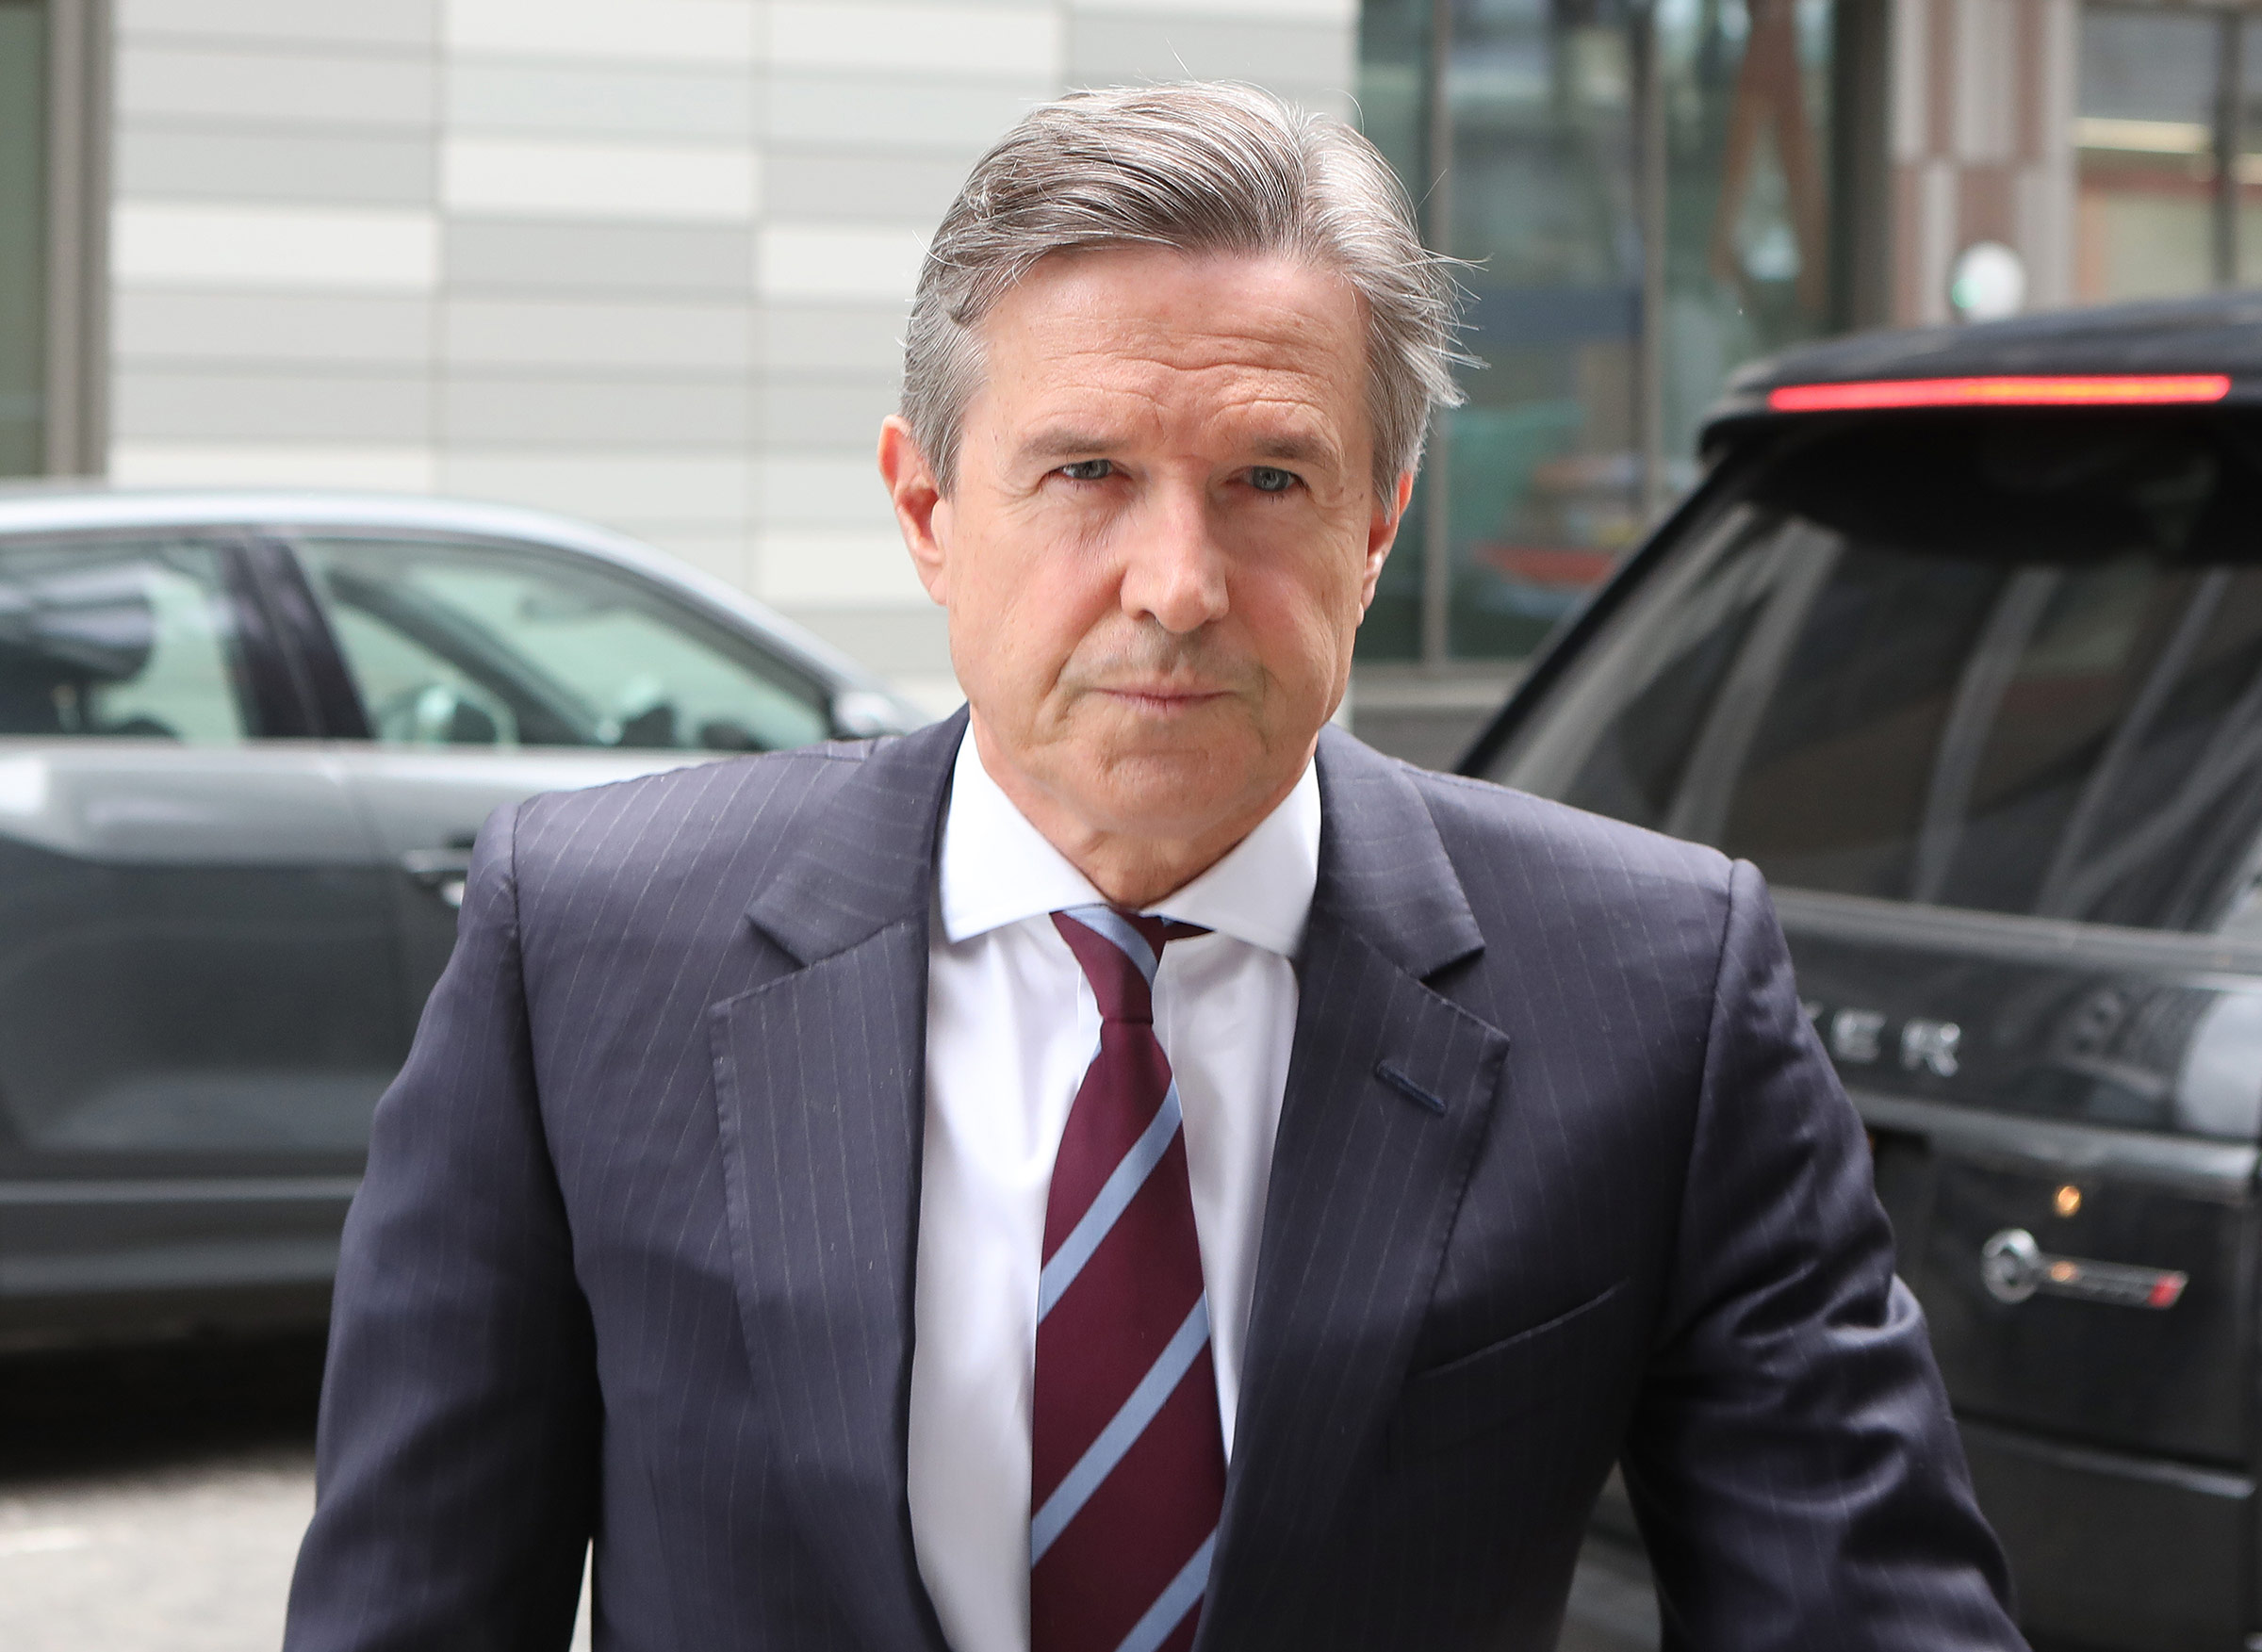 Aston Villa chief executive Christian Purslow arrives at the Premier League offices in London, on March 13, 2020.